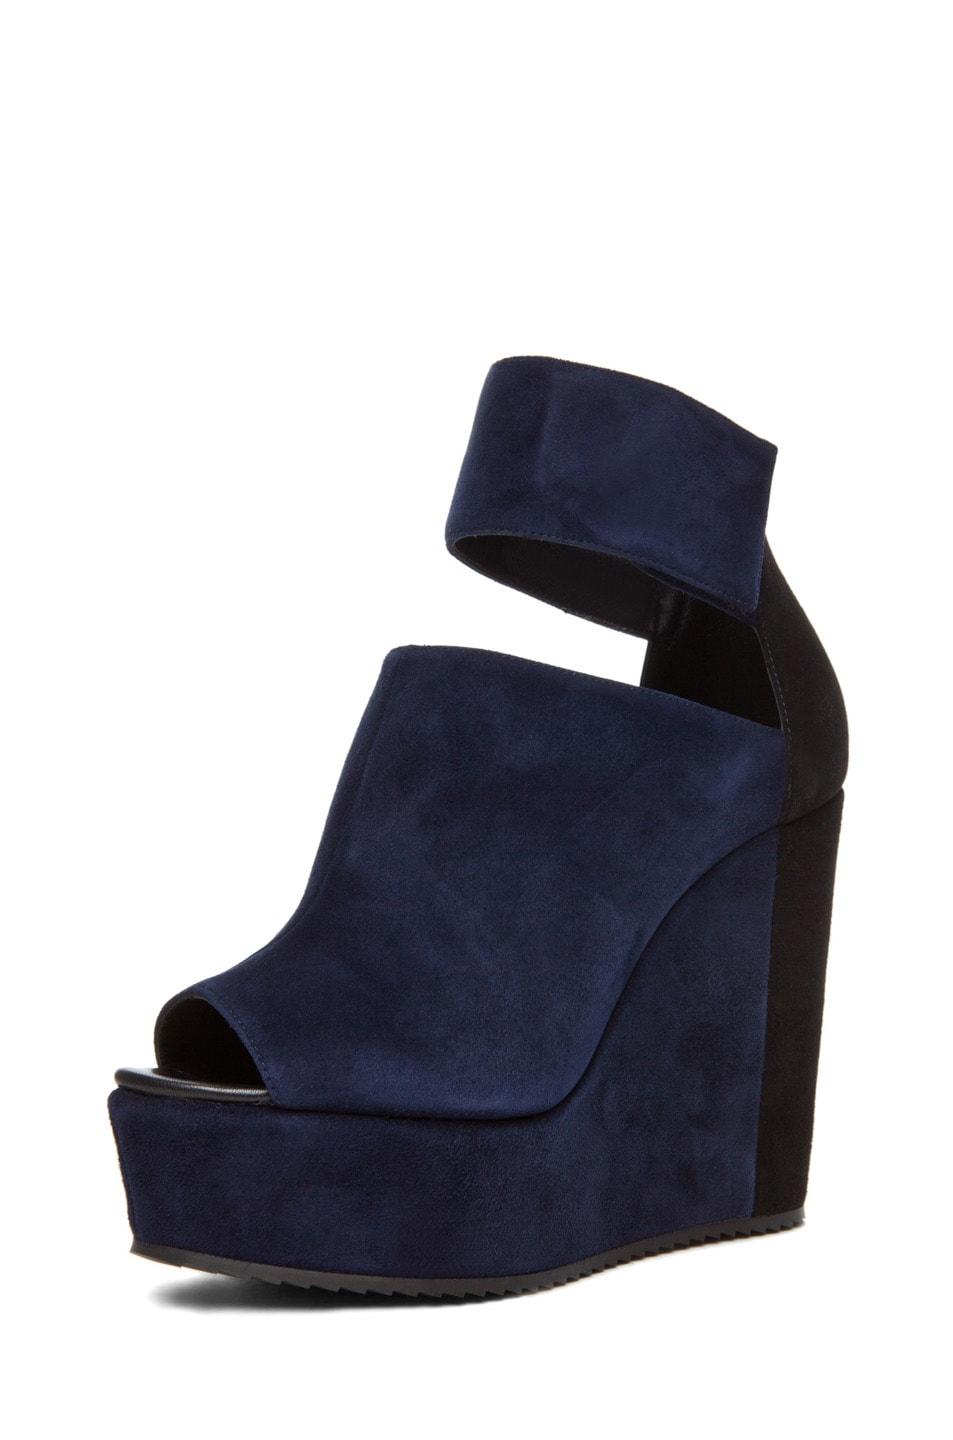 Image 1 of Pierre Hardy Colorblocked Wedge in Navy